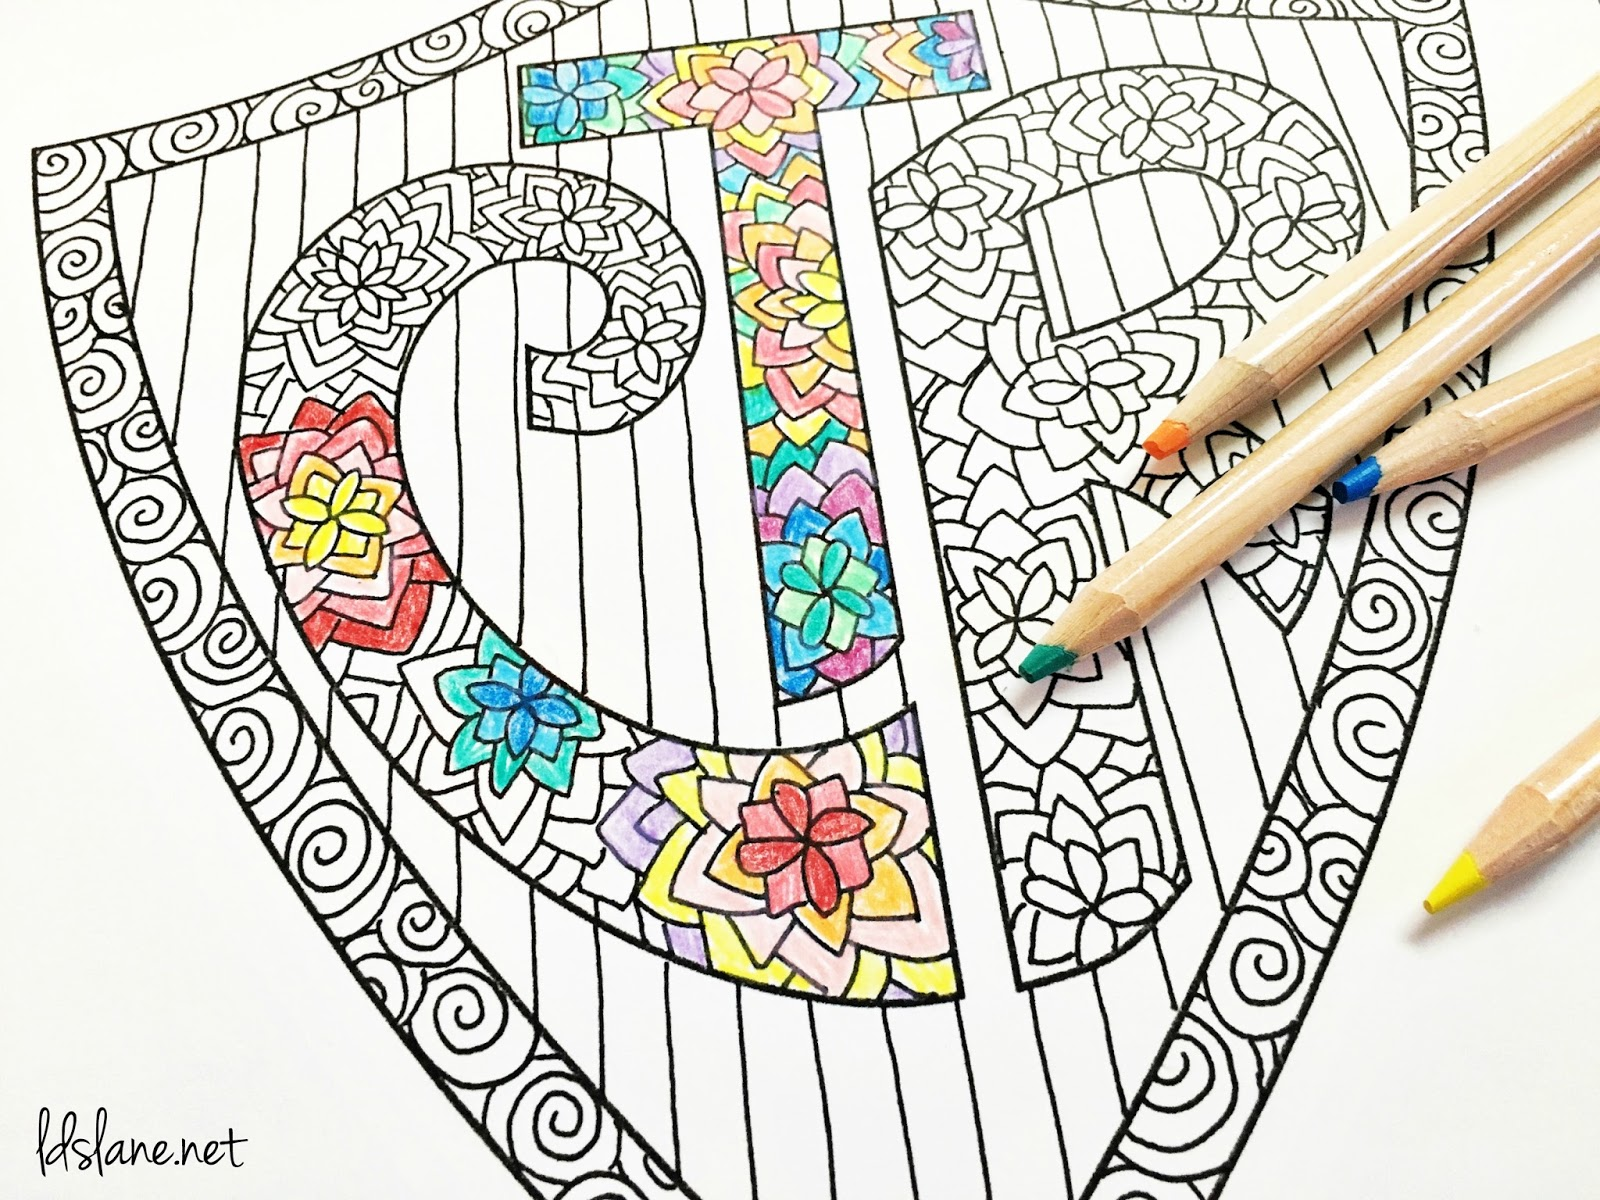 article of faith coloring pages - photo#8